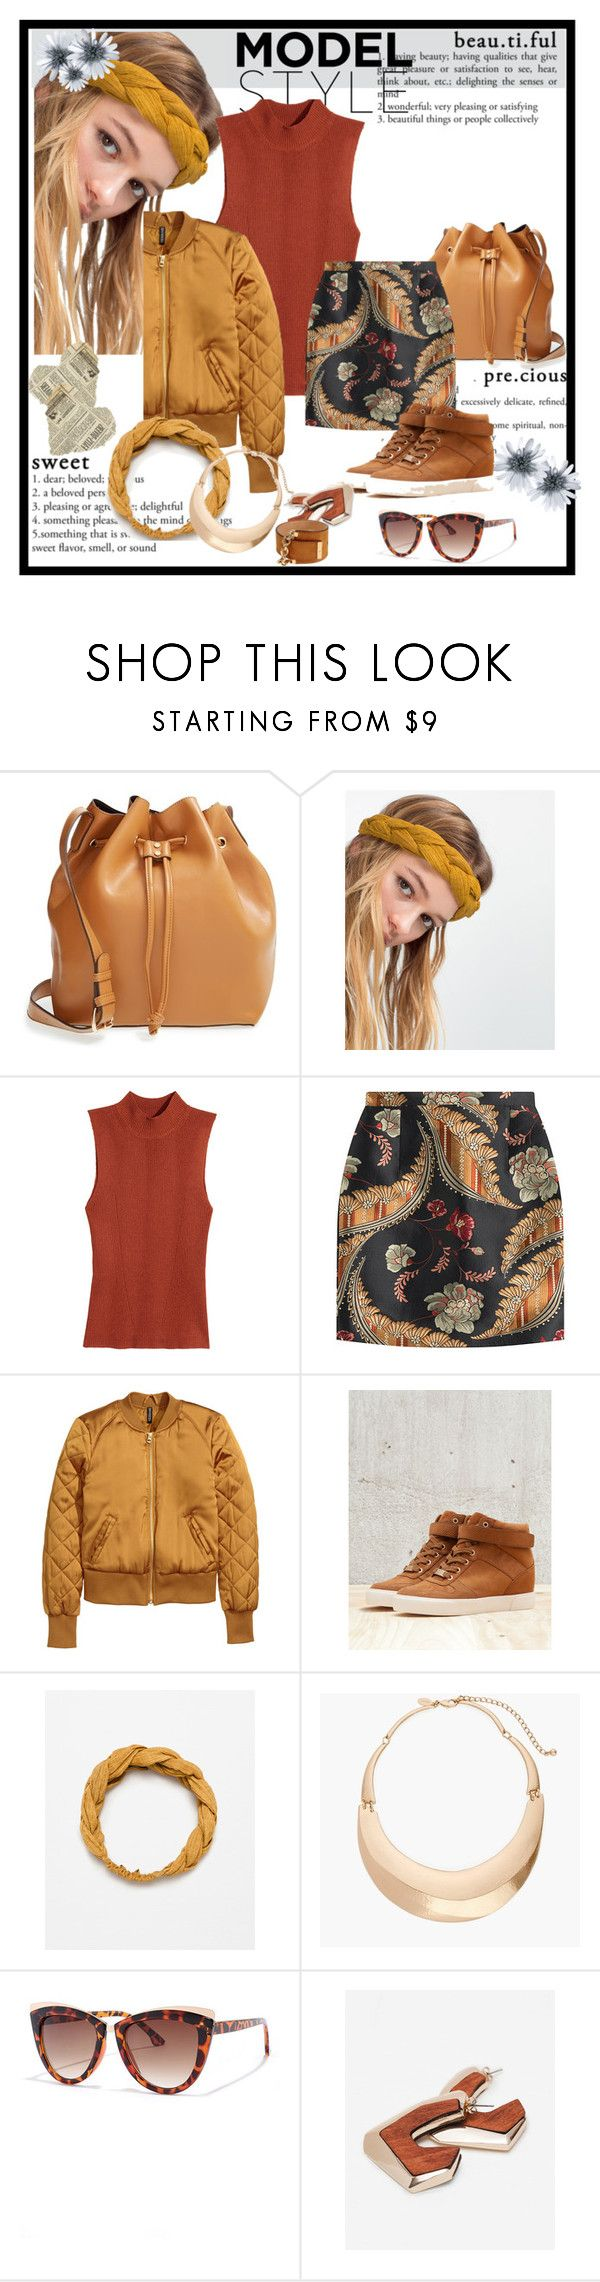 """""""Untitled #276"""" by vasso960 ❤ liked on Polyvore featuring Sole Society, Zara, H&M, Dsquared2, Bershka, Chico's and LULUS"""